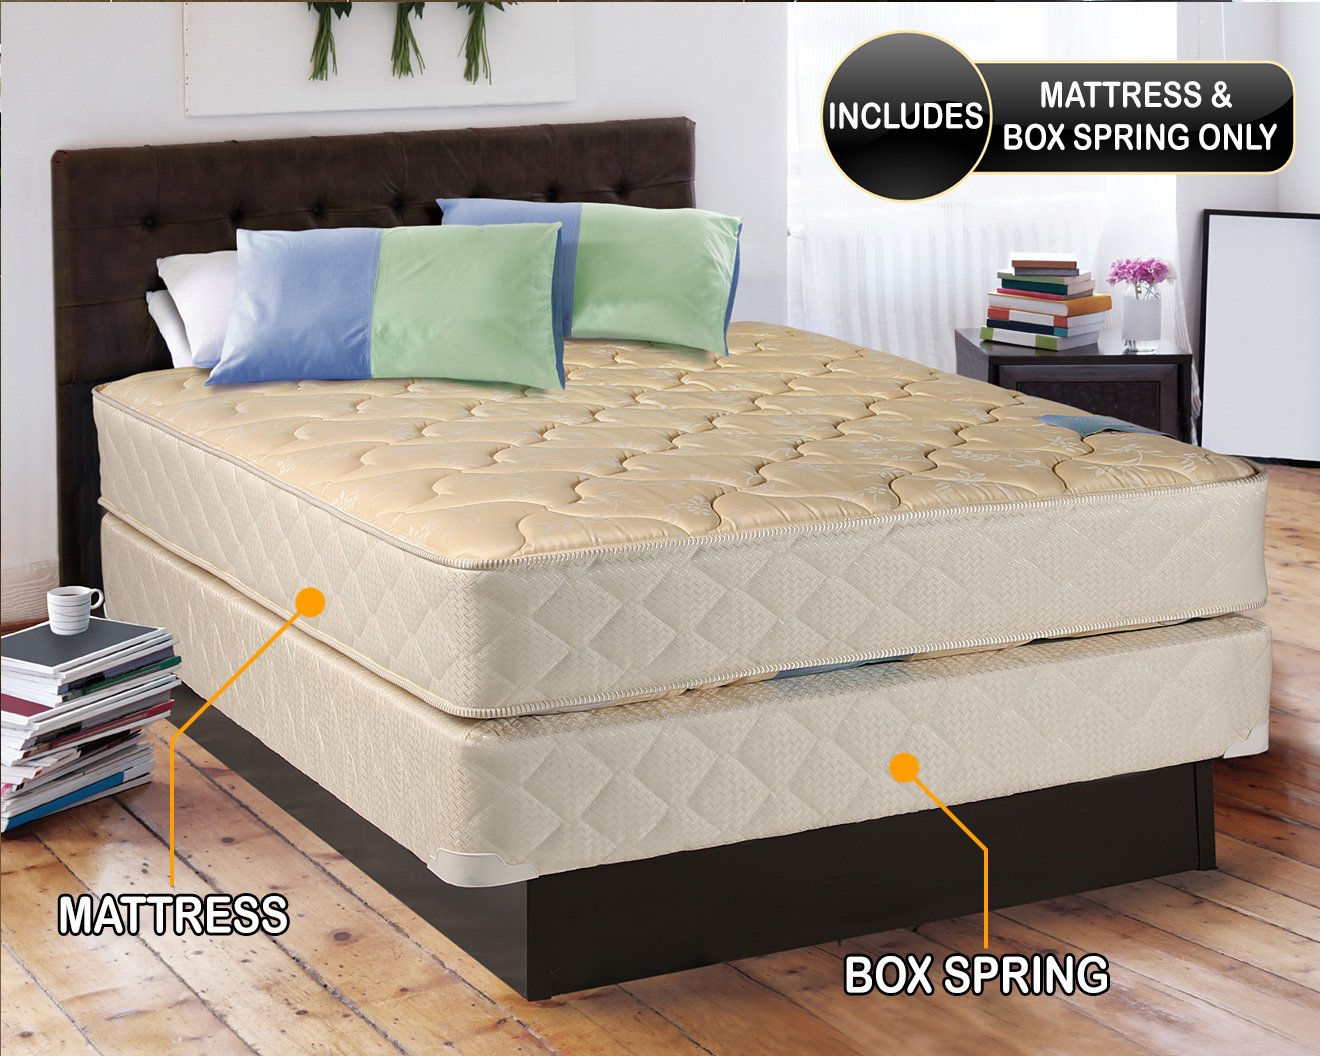 Chiro Premier Orthopedic (Beige Color) Full XL Size (54''x80''x9'') Mattress and Box Spring Set - Fully Assembled, Good for your back, Superior Quality, Long Lasting and 2 Sided - By Dream Solutions USA by Dream Solutions USA